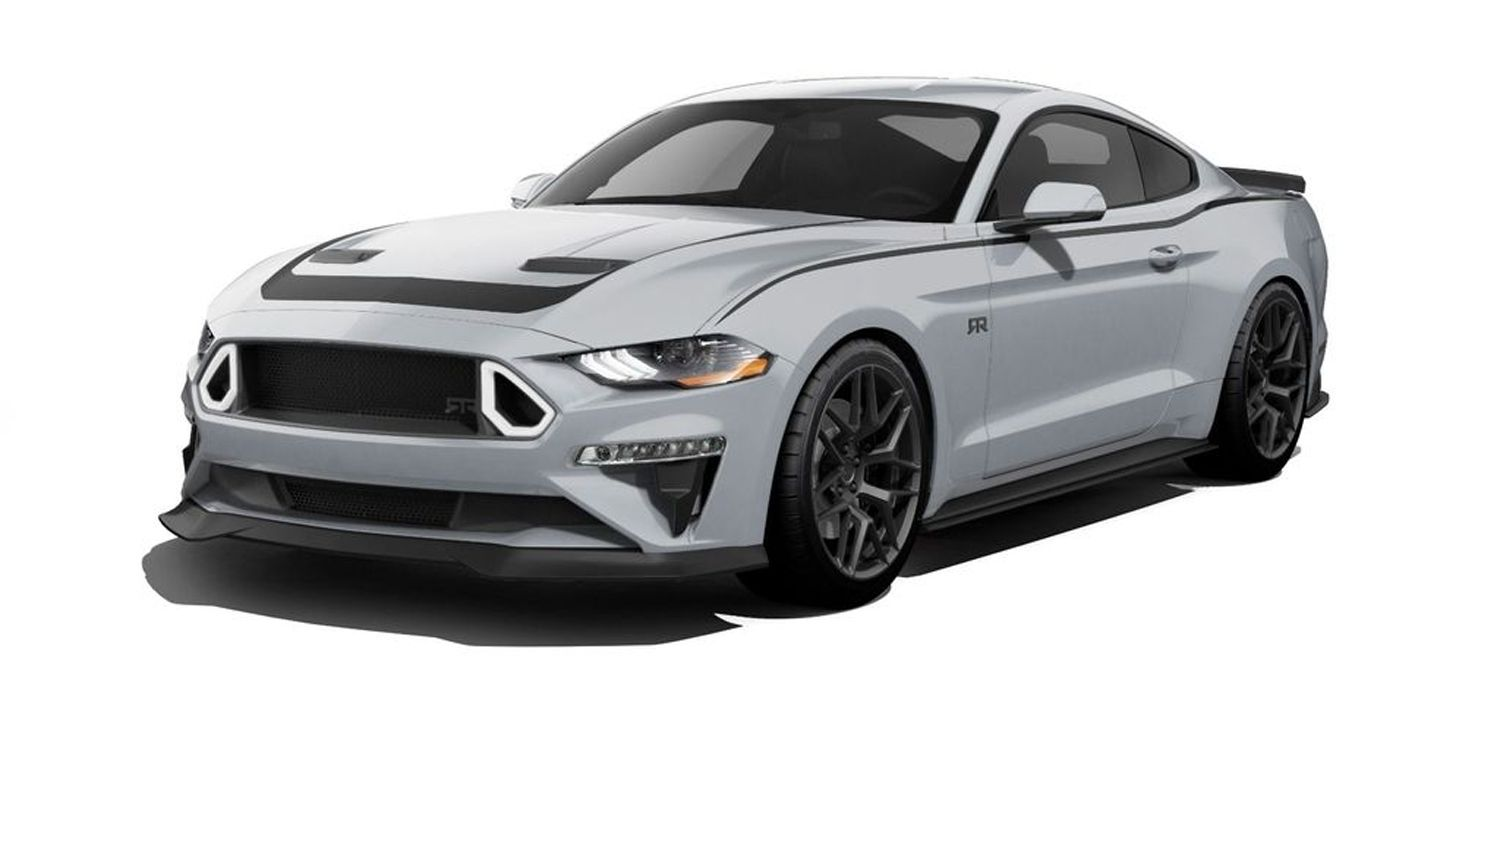 2019 Ford Mustang Rtr Spec 3 Has A Blower And A Warranty 2019